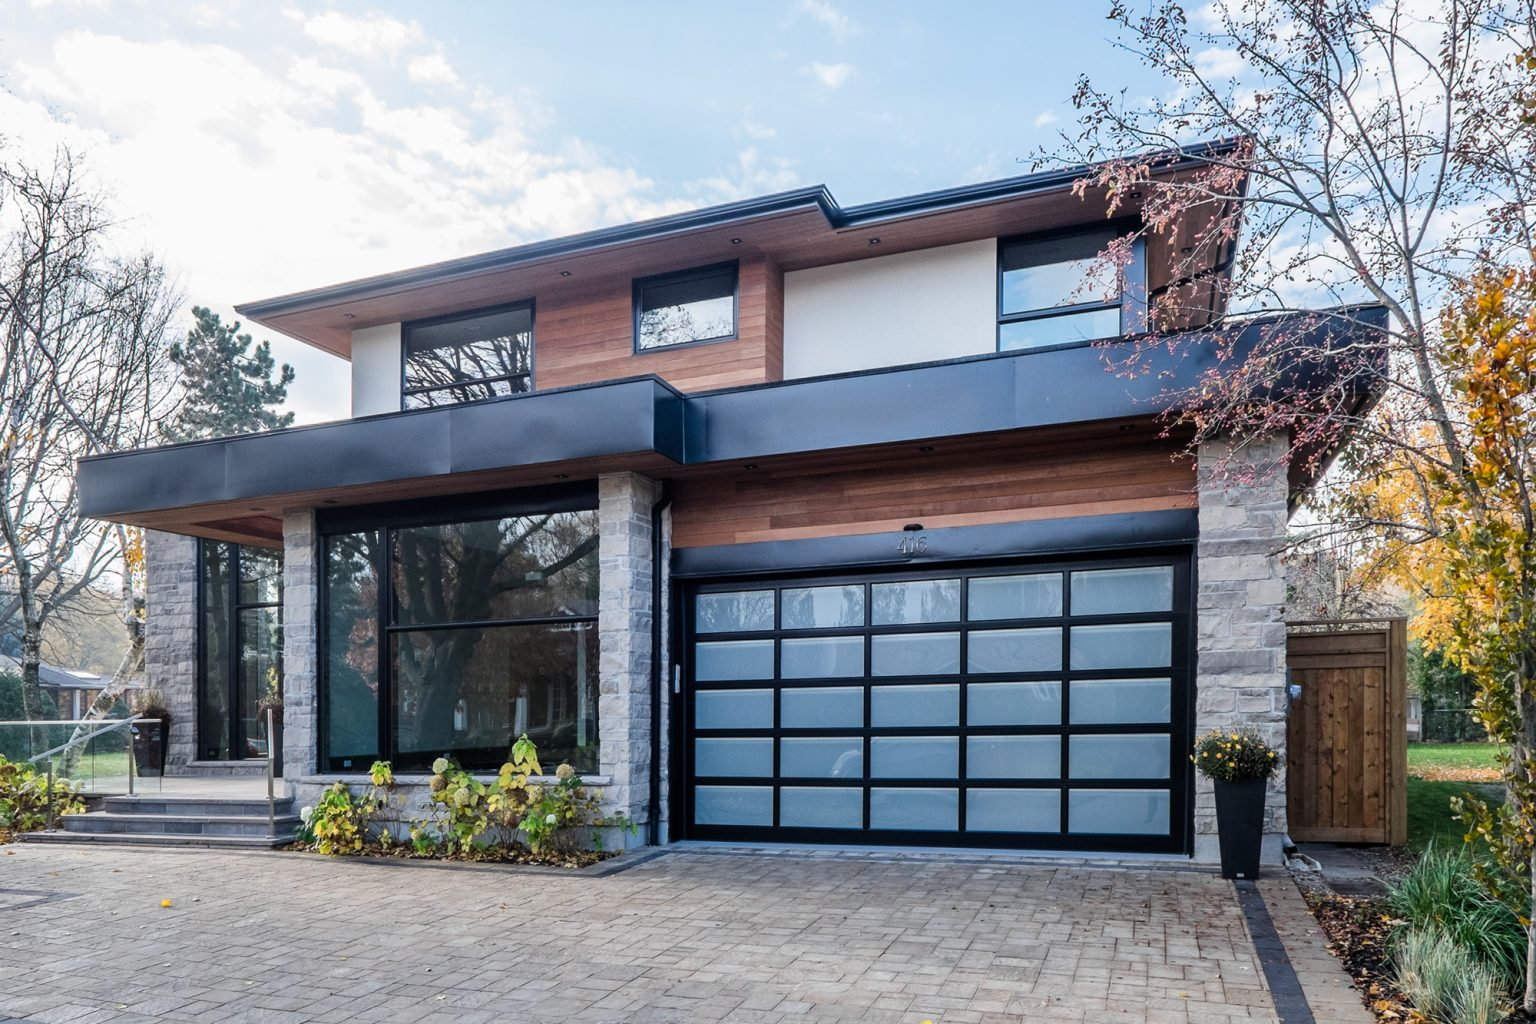 oakville-detached-home-with-glass-railings-01